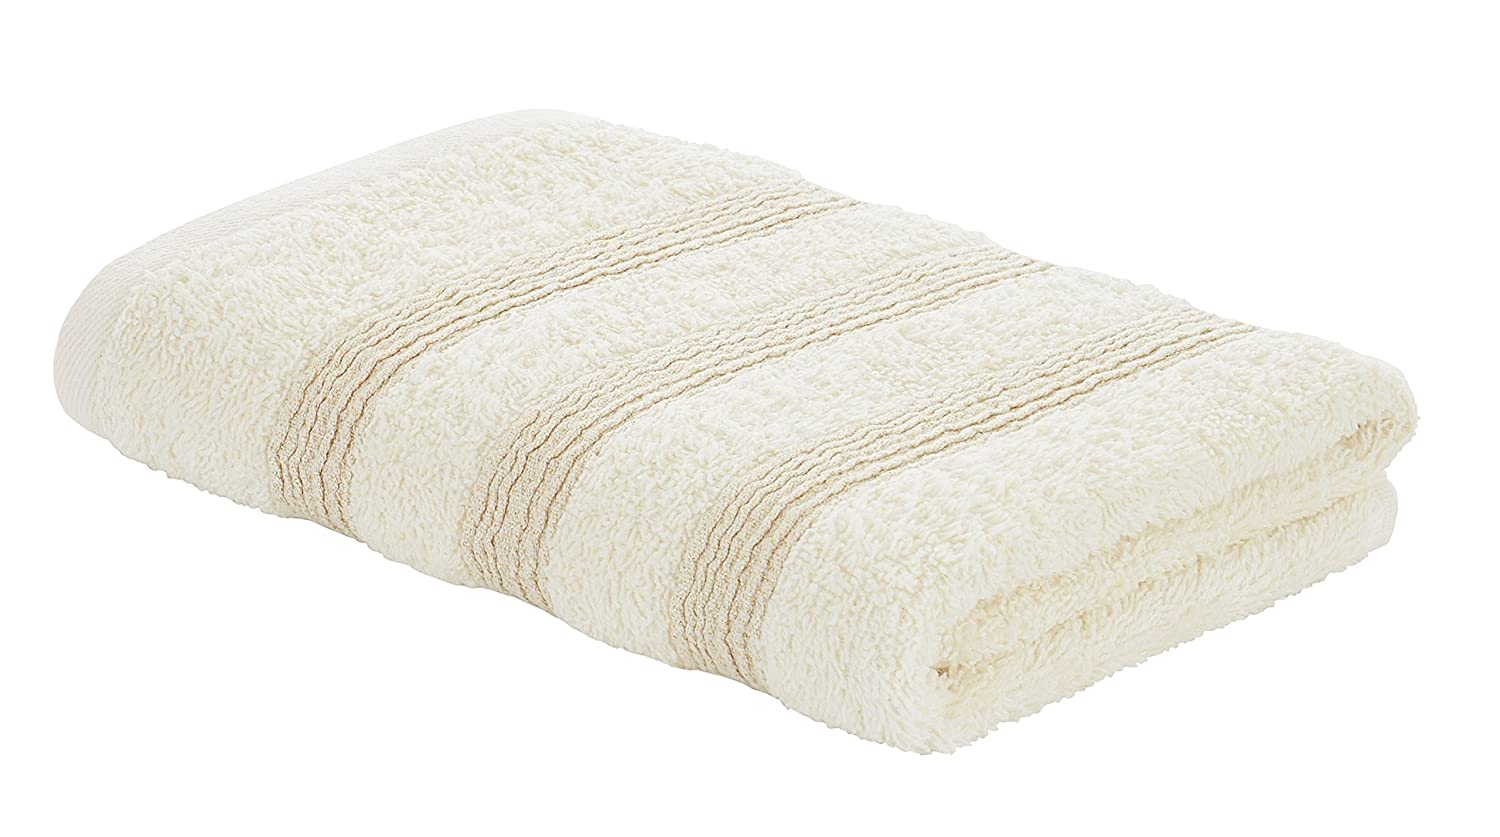 Catherine Lansfield Lurex Bands Hand Towel, Cream/Gold Turner Bianca TW/43365/W/HT/CGO